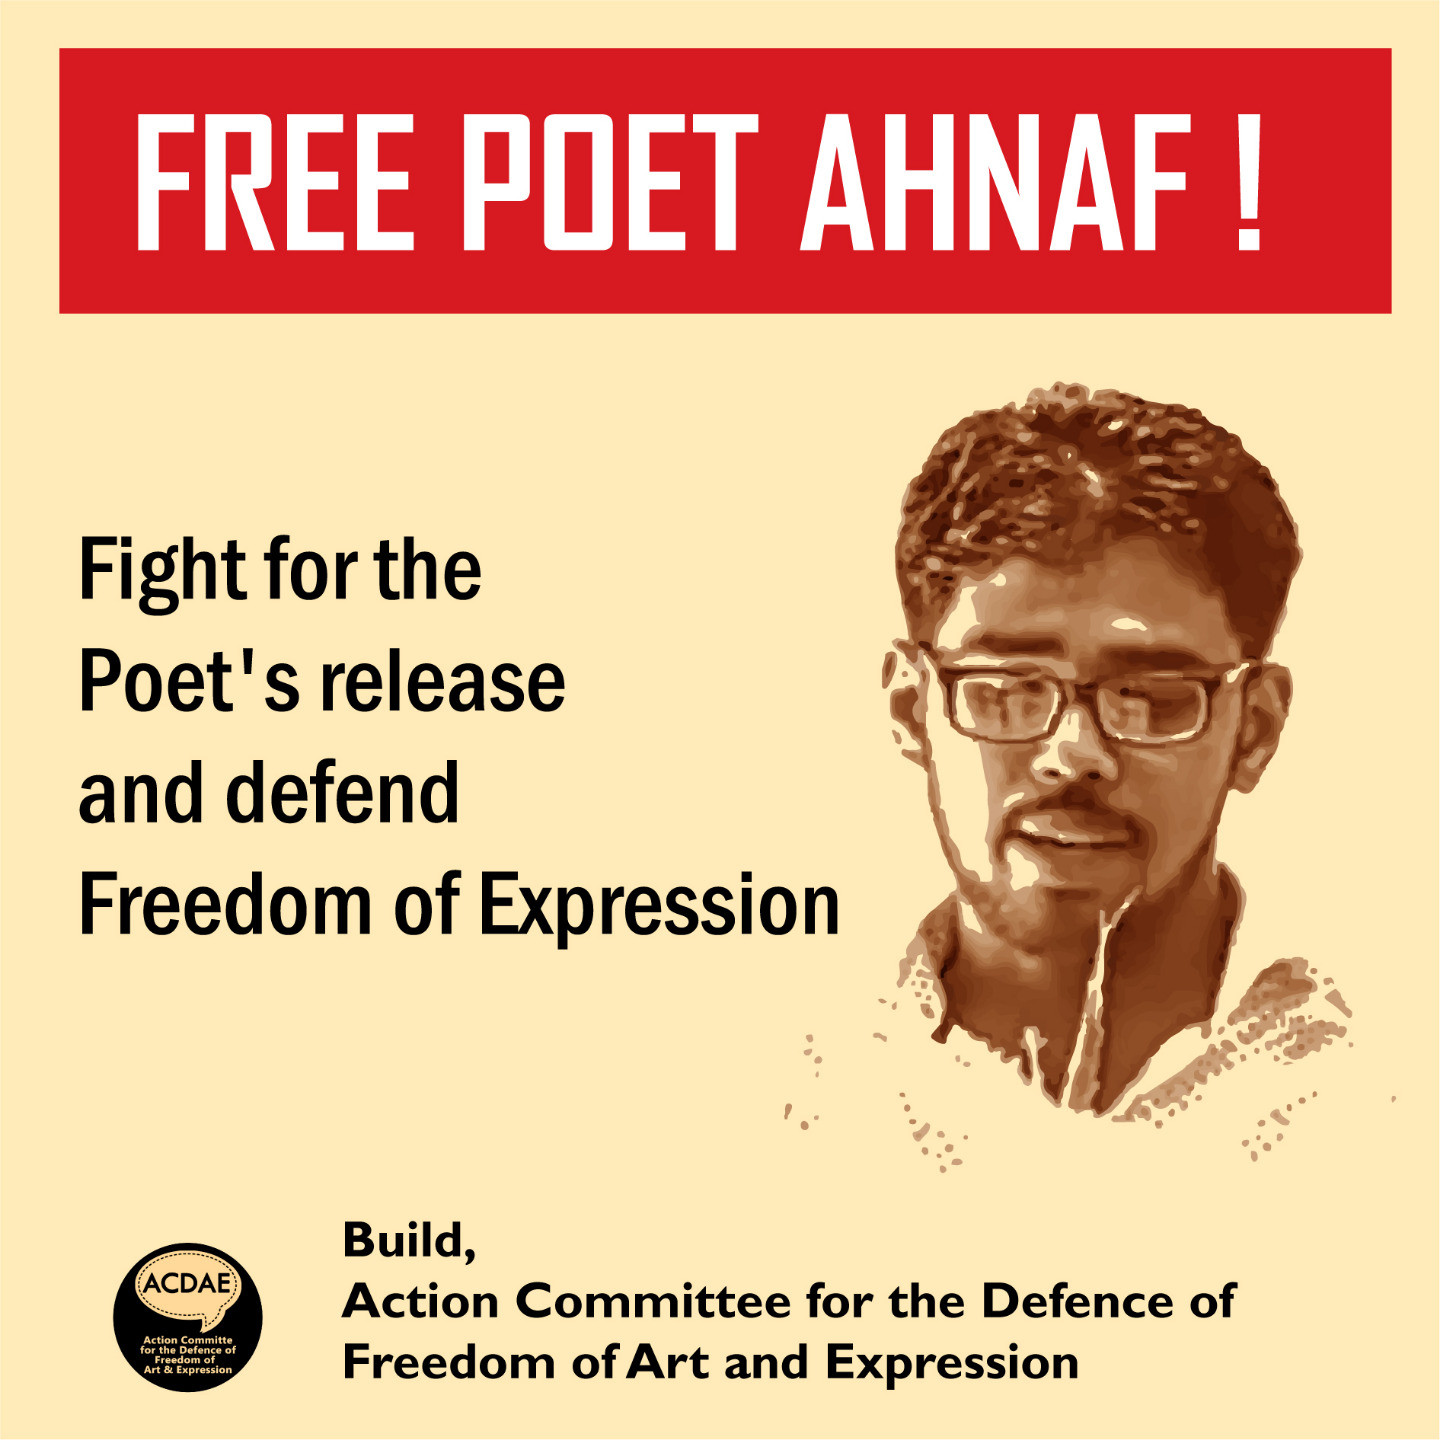 A picture of the young poet Ahnaf lang:EN